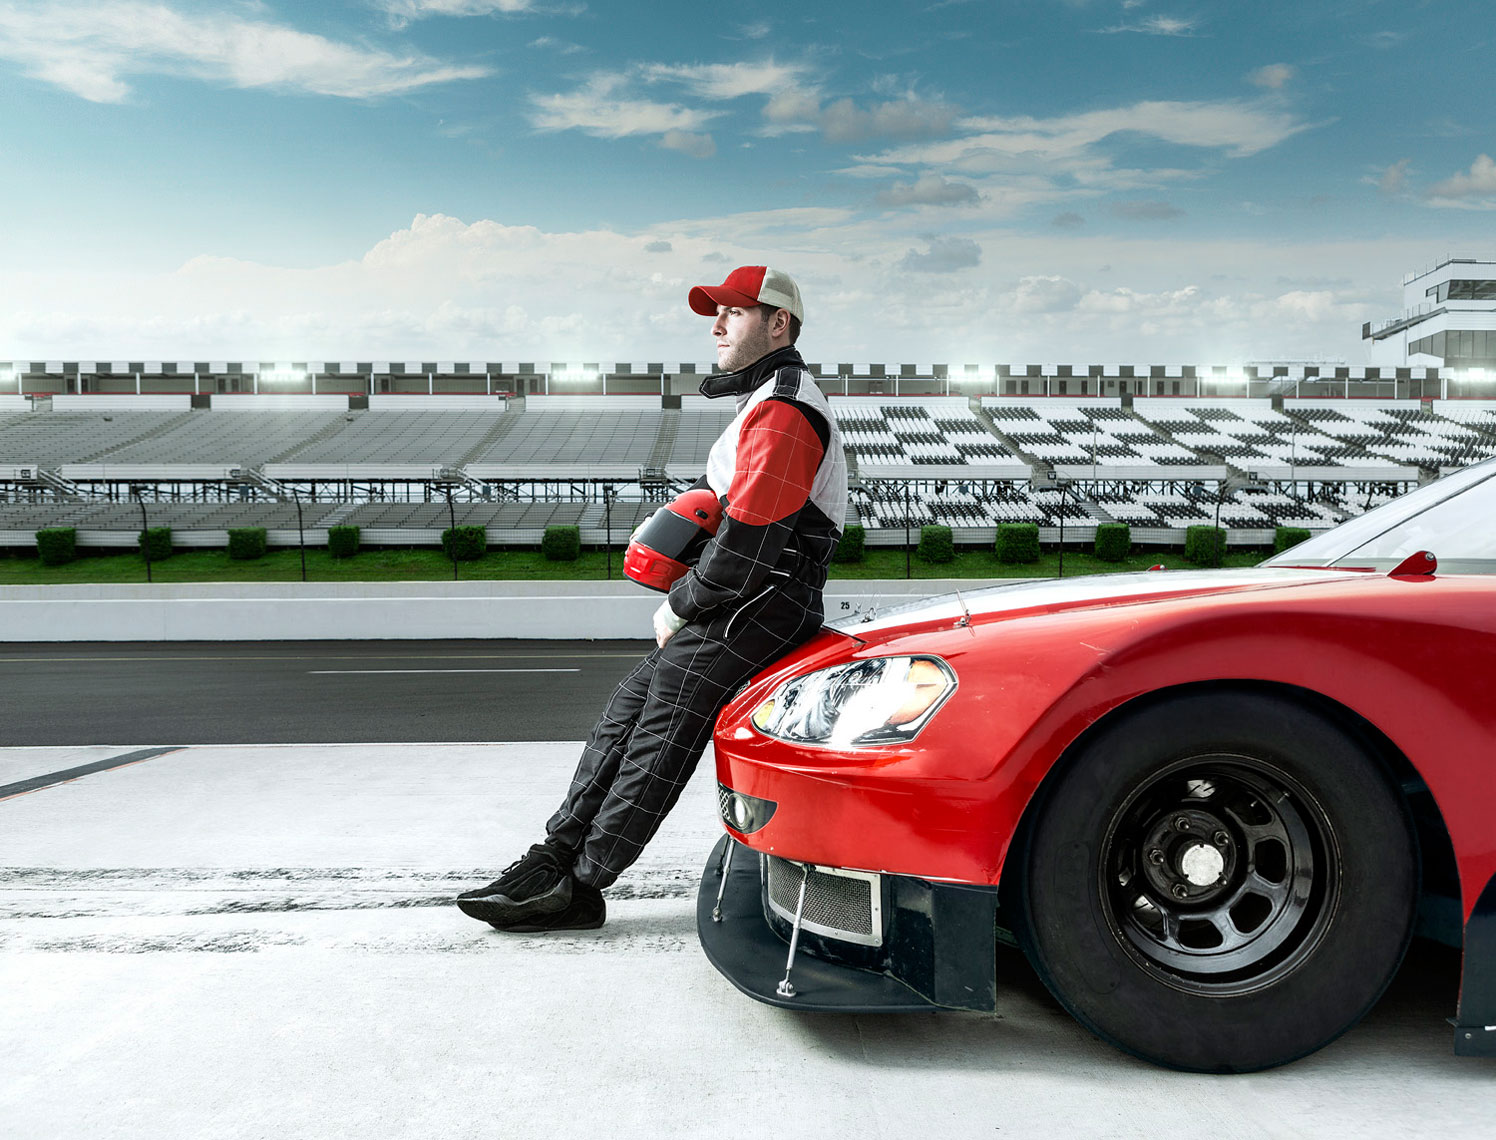 NASCAR Driver and Car Scene: CORBIS